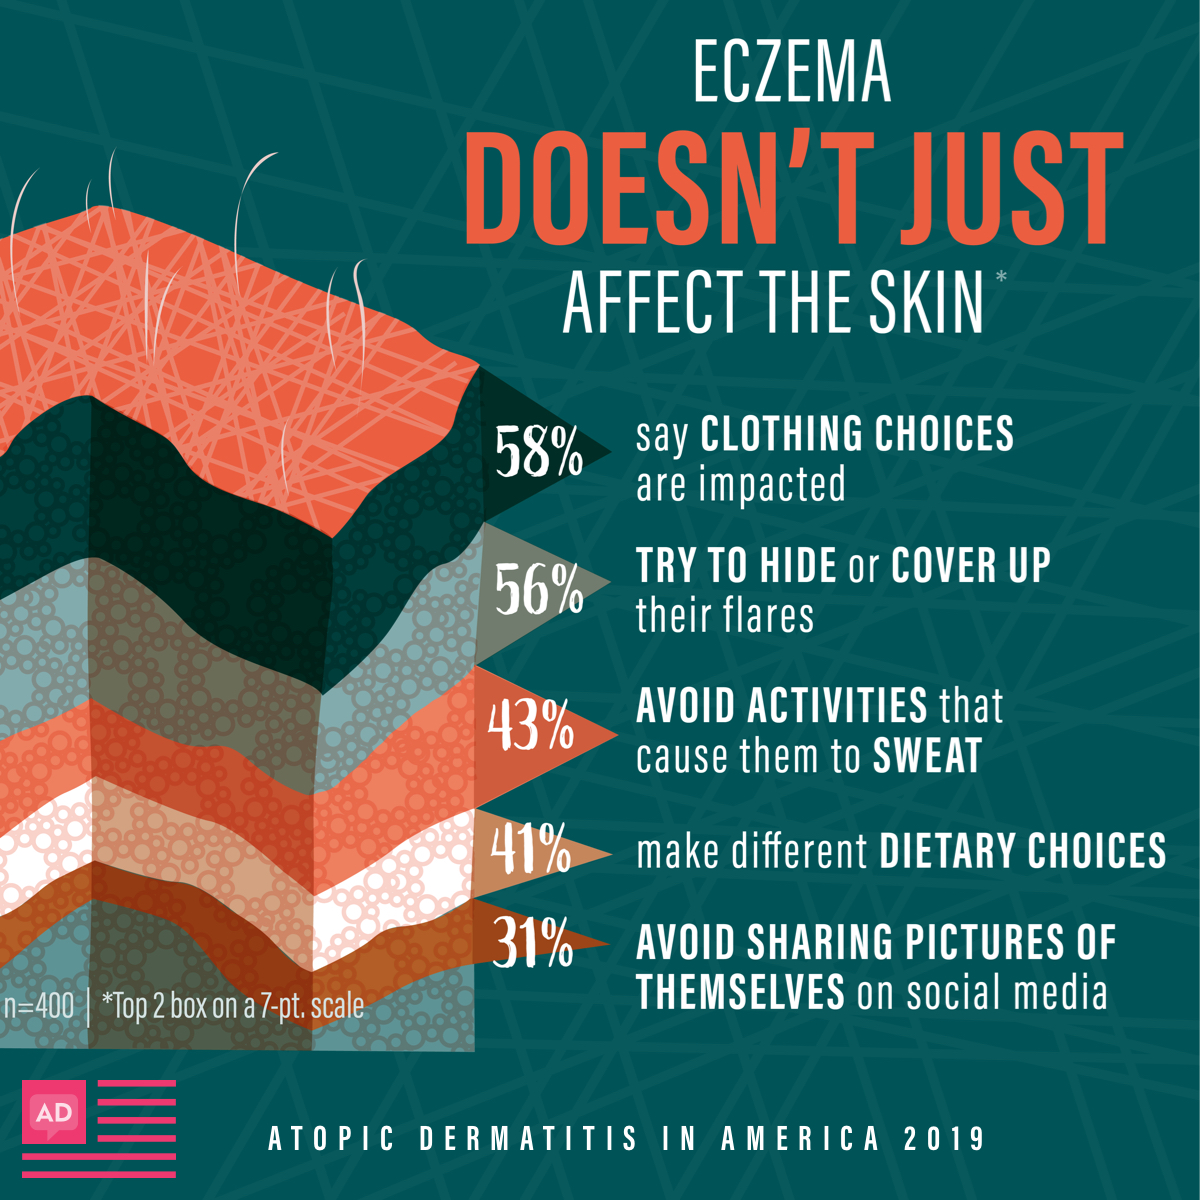 Eczema impacts clothing choices, activities that involve sweating, dietary choices, and picture posting on social media.